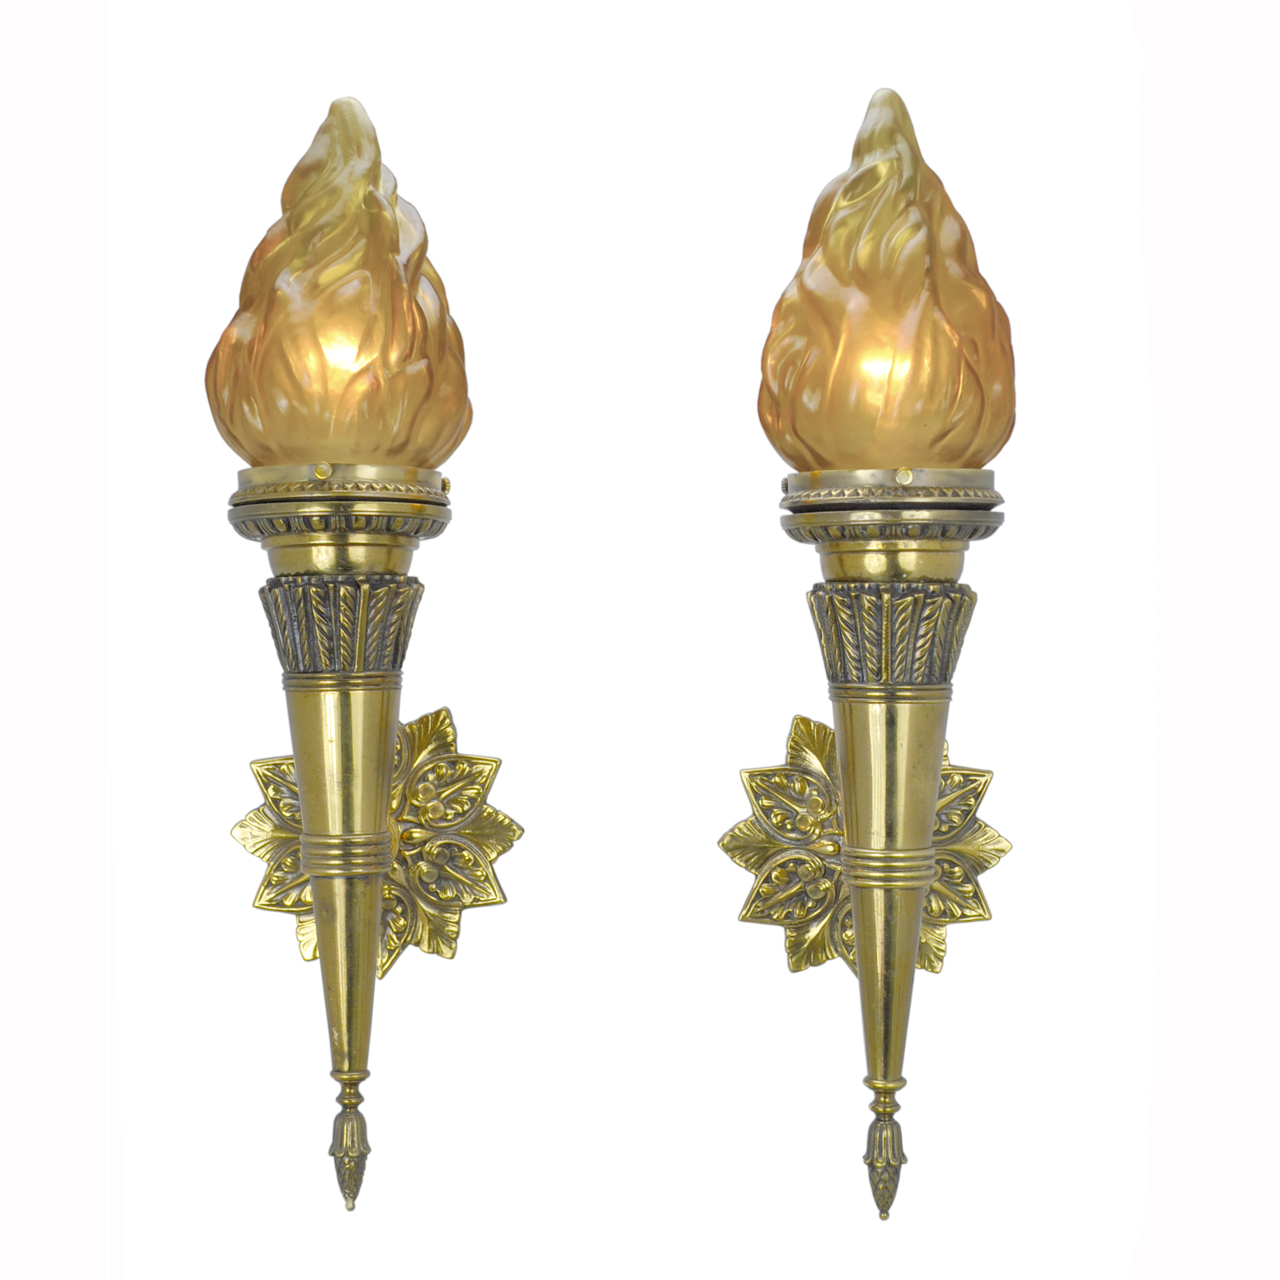 Pair of Antique Torch Sconces with Flame Shades (ANT-399) For Sale Antiques.com Classifieds